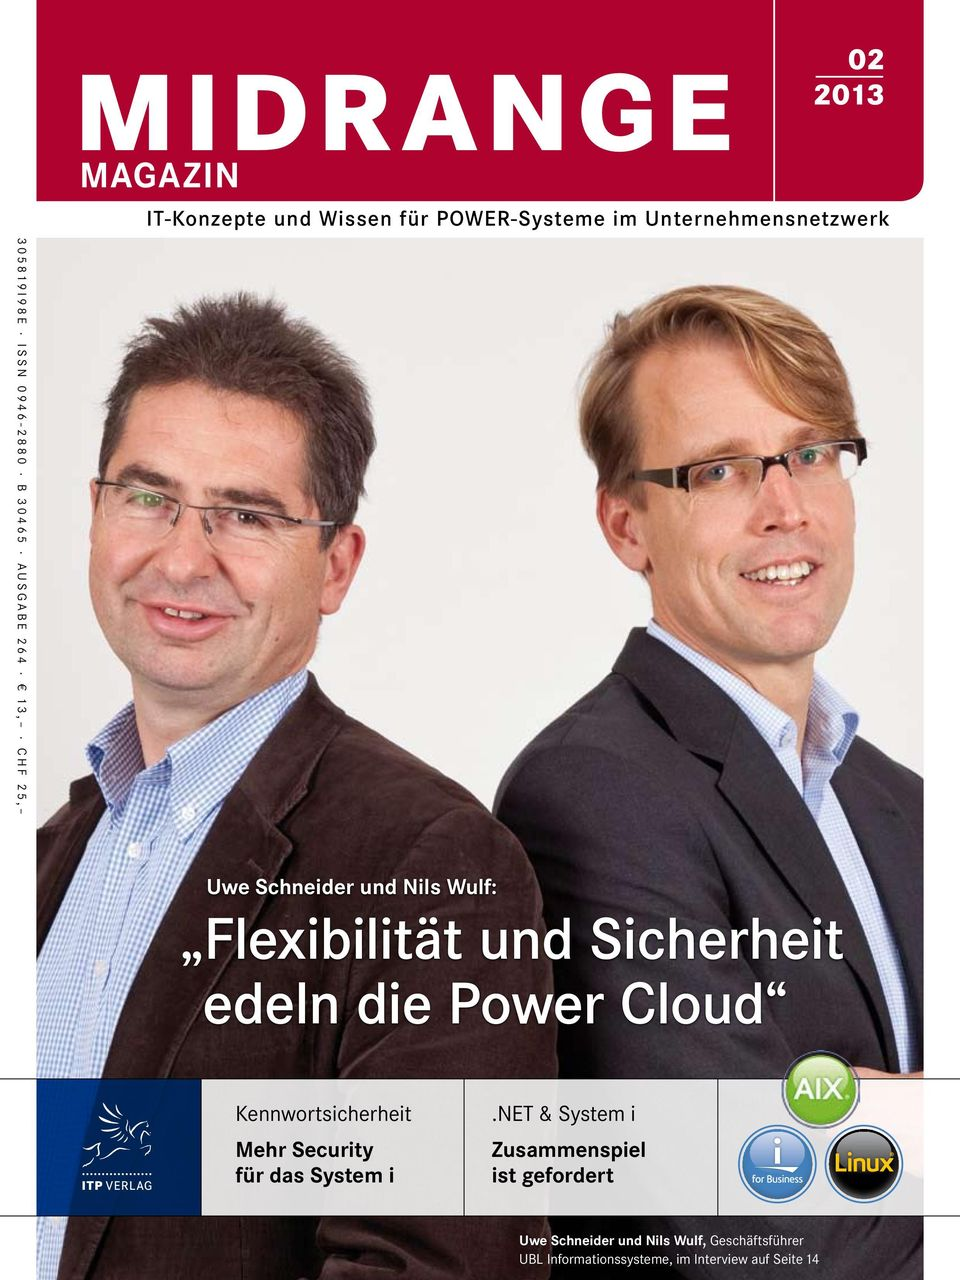 Power Cloud Kennwortsicherheit Mehr Security für das System i.